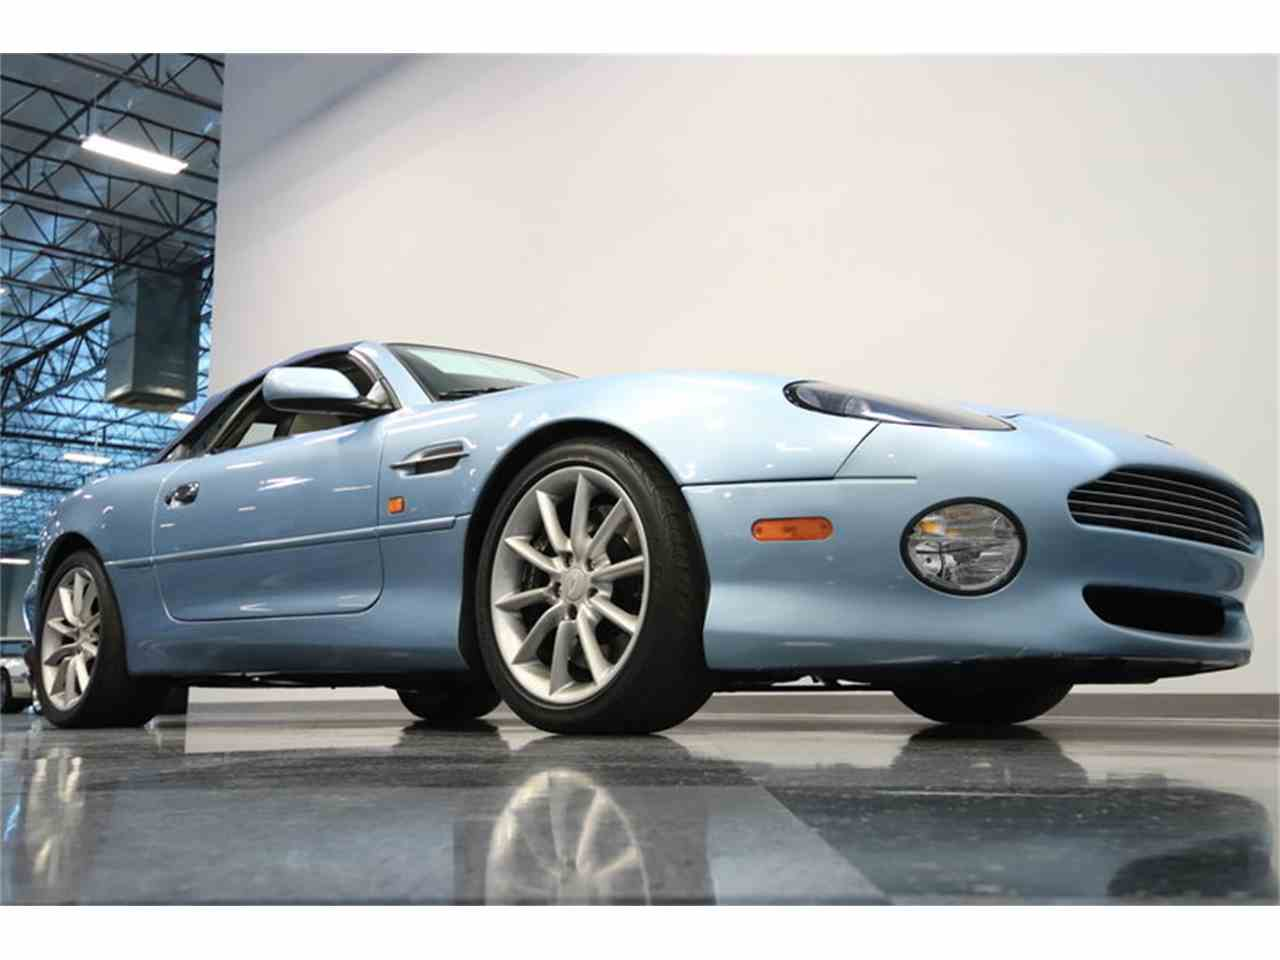 Large Picture of 2000 DB7 Vantage Volante - $39,995.00 Offered by Streetside Classics - Phoenix - M73B